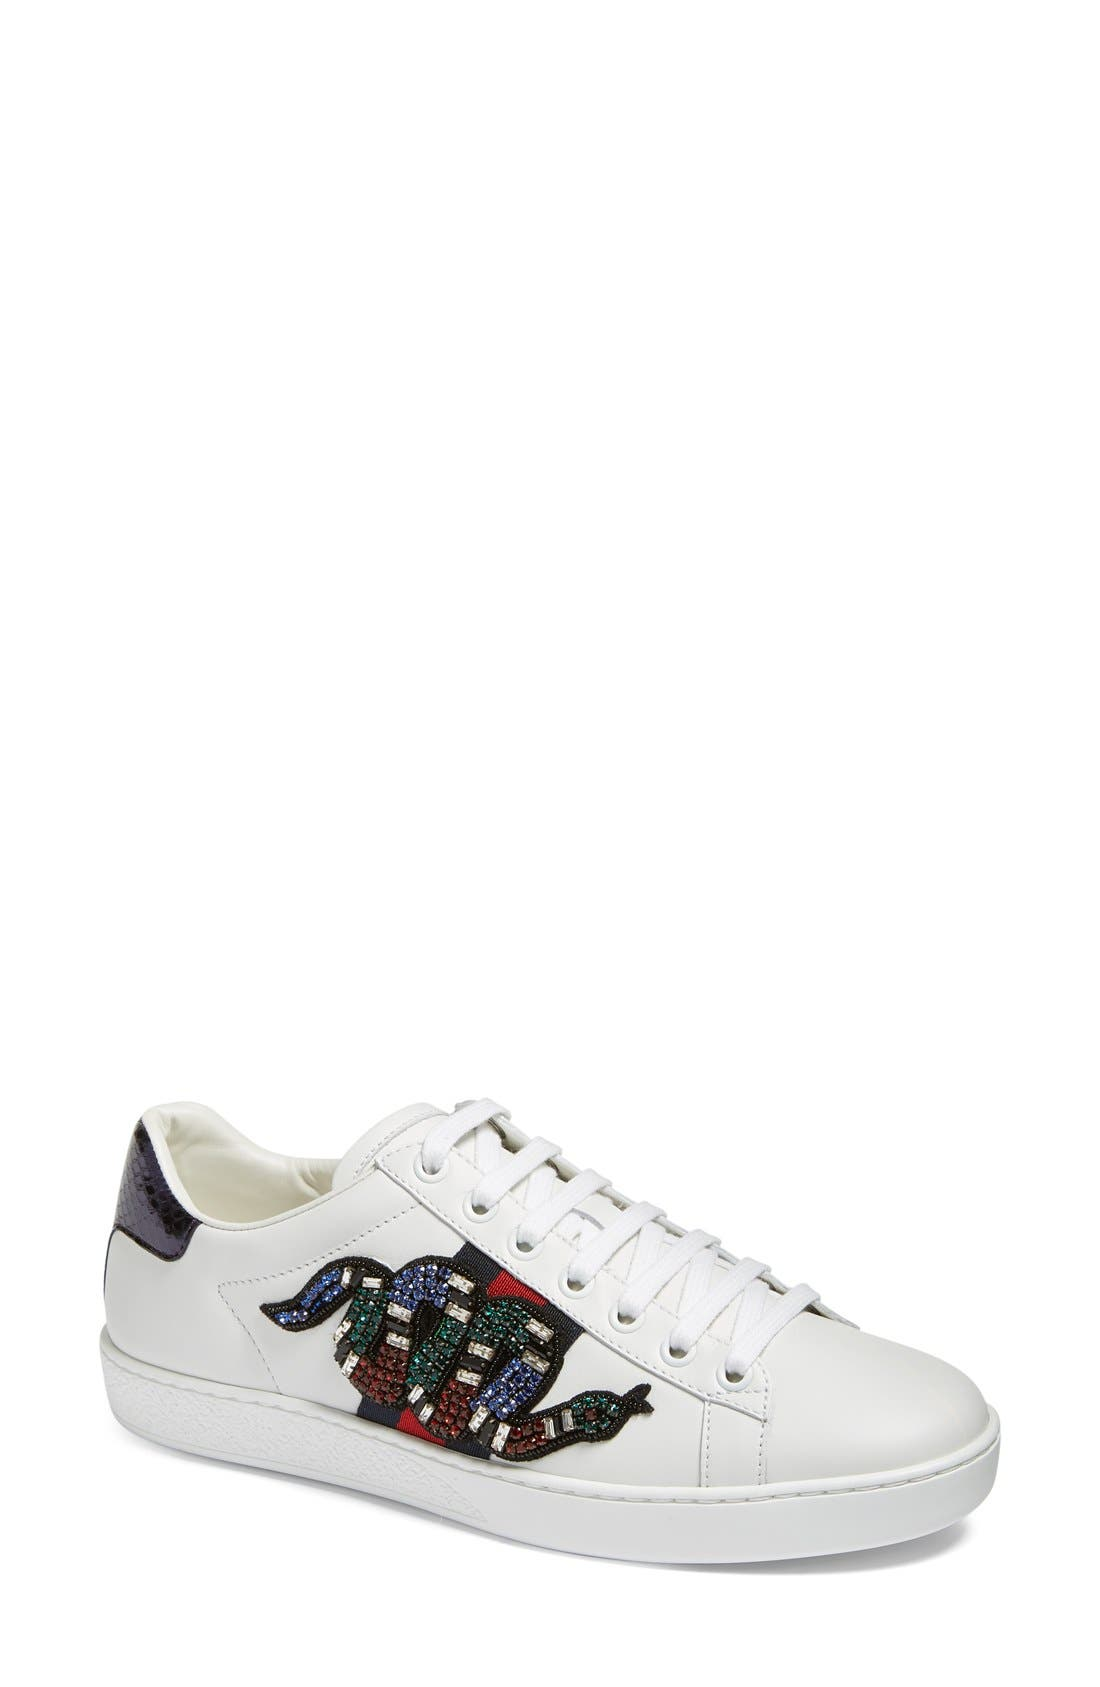 Main Image - Gucci New Age Snake Embellished Sneaker (Women)